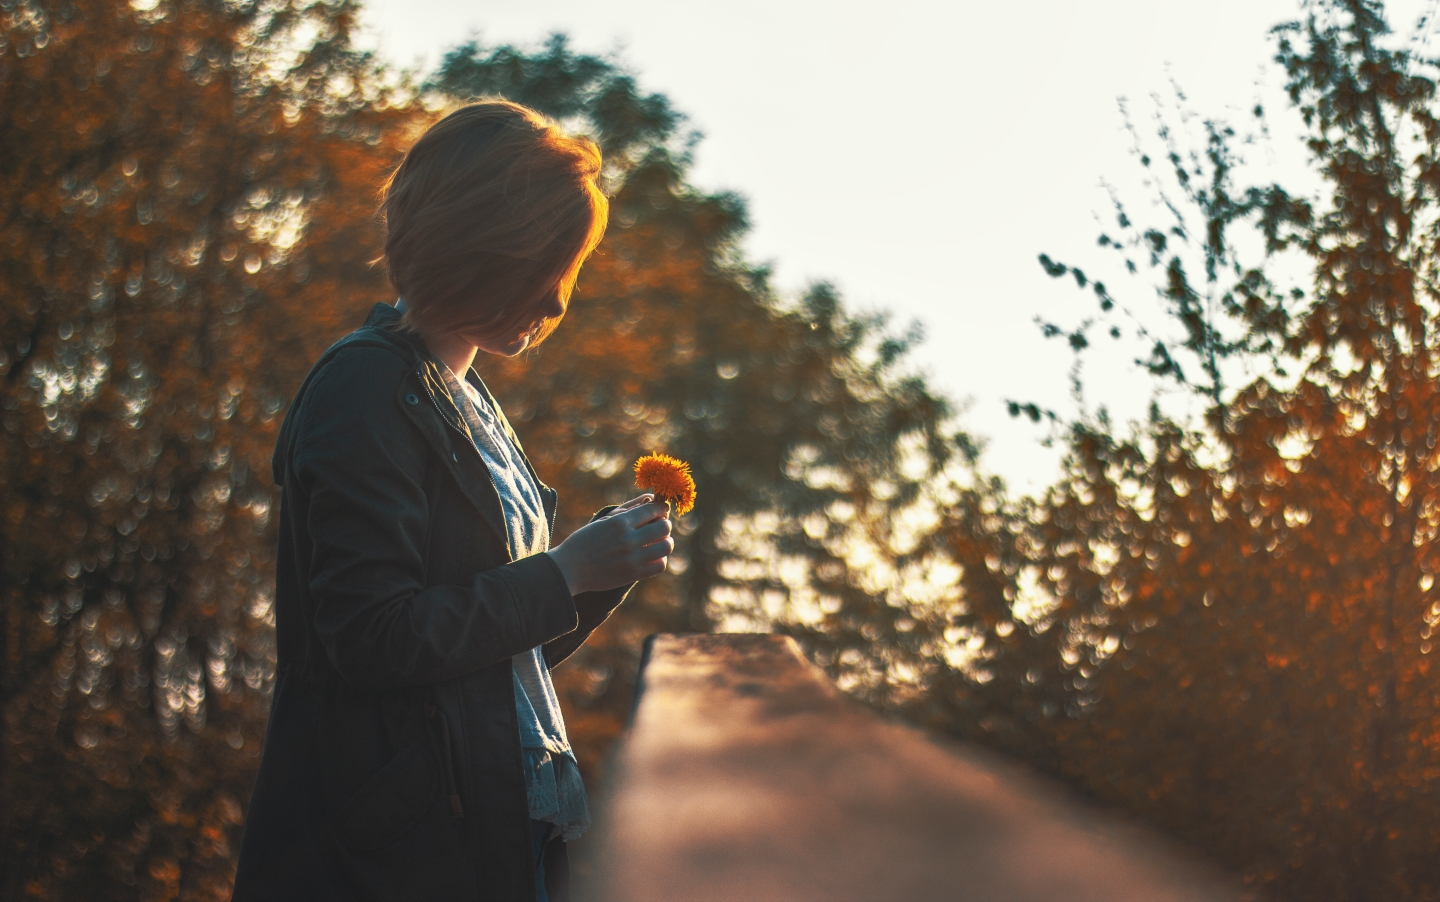 https://www.pexels.com/photo/autumn-beautiful-blur-blurry-403638/